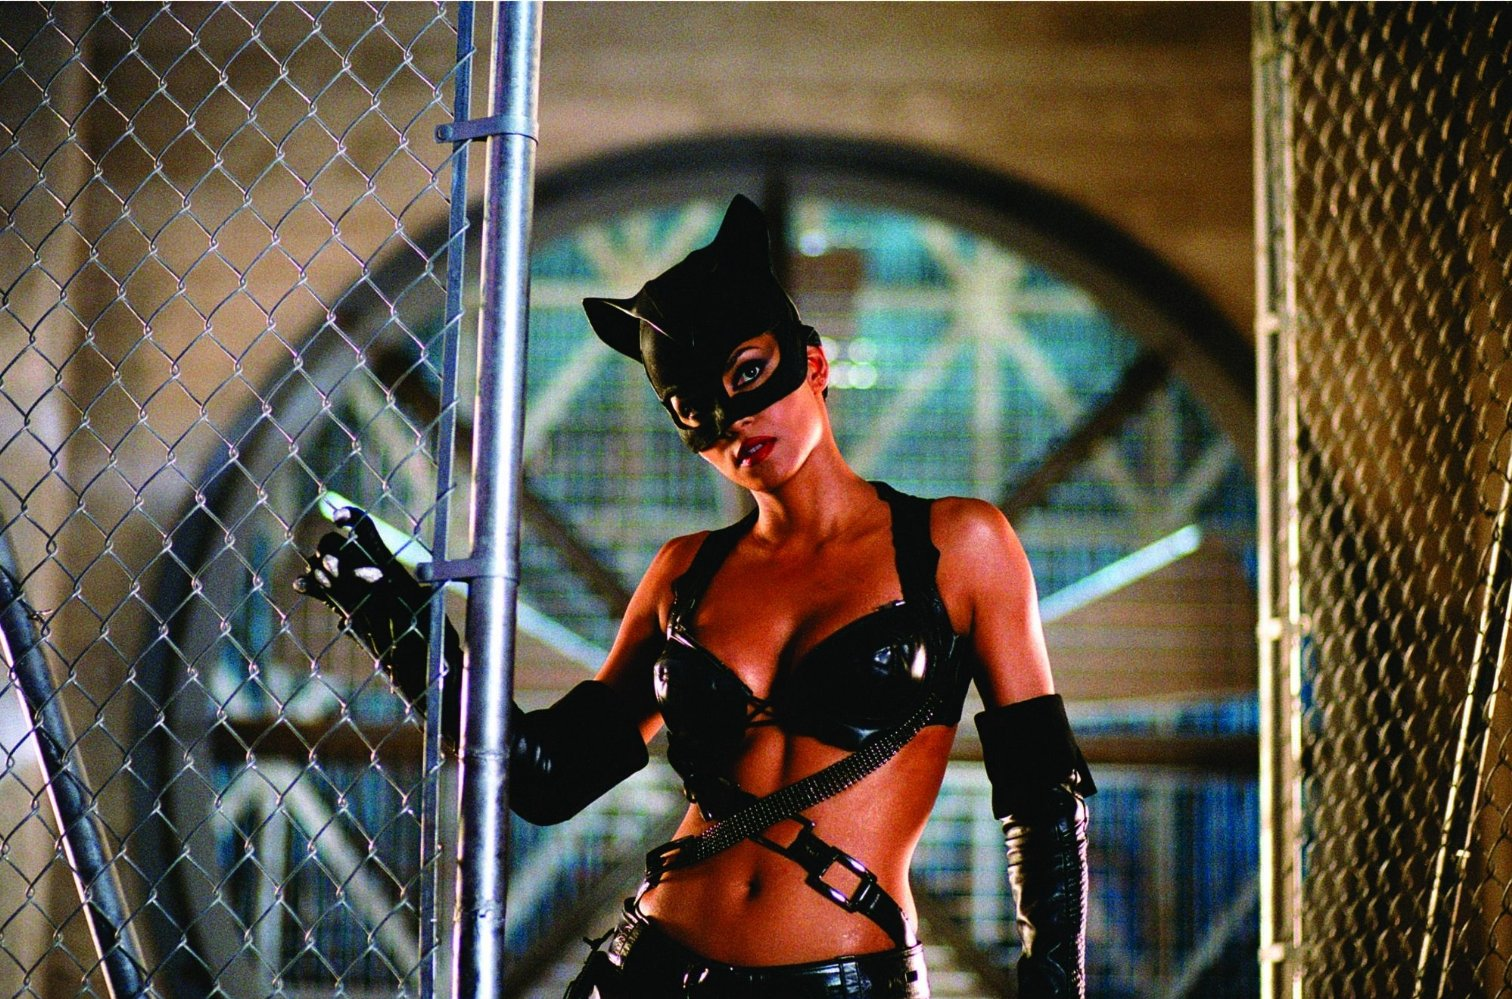 Catwoman 2004 Full Movie Watch In Hd Online For Free - 1 -8236